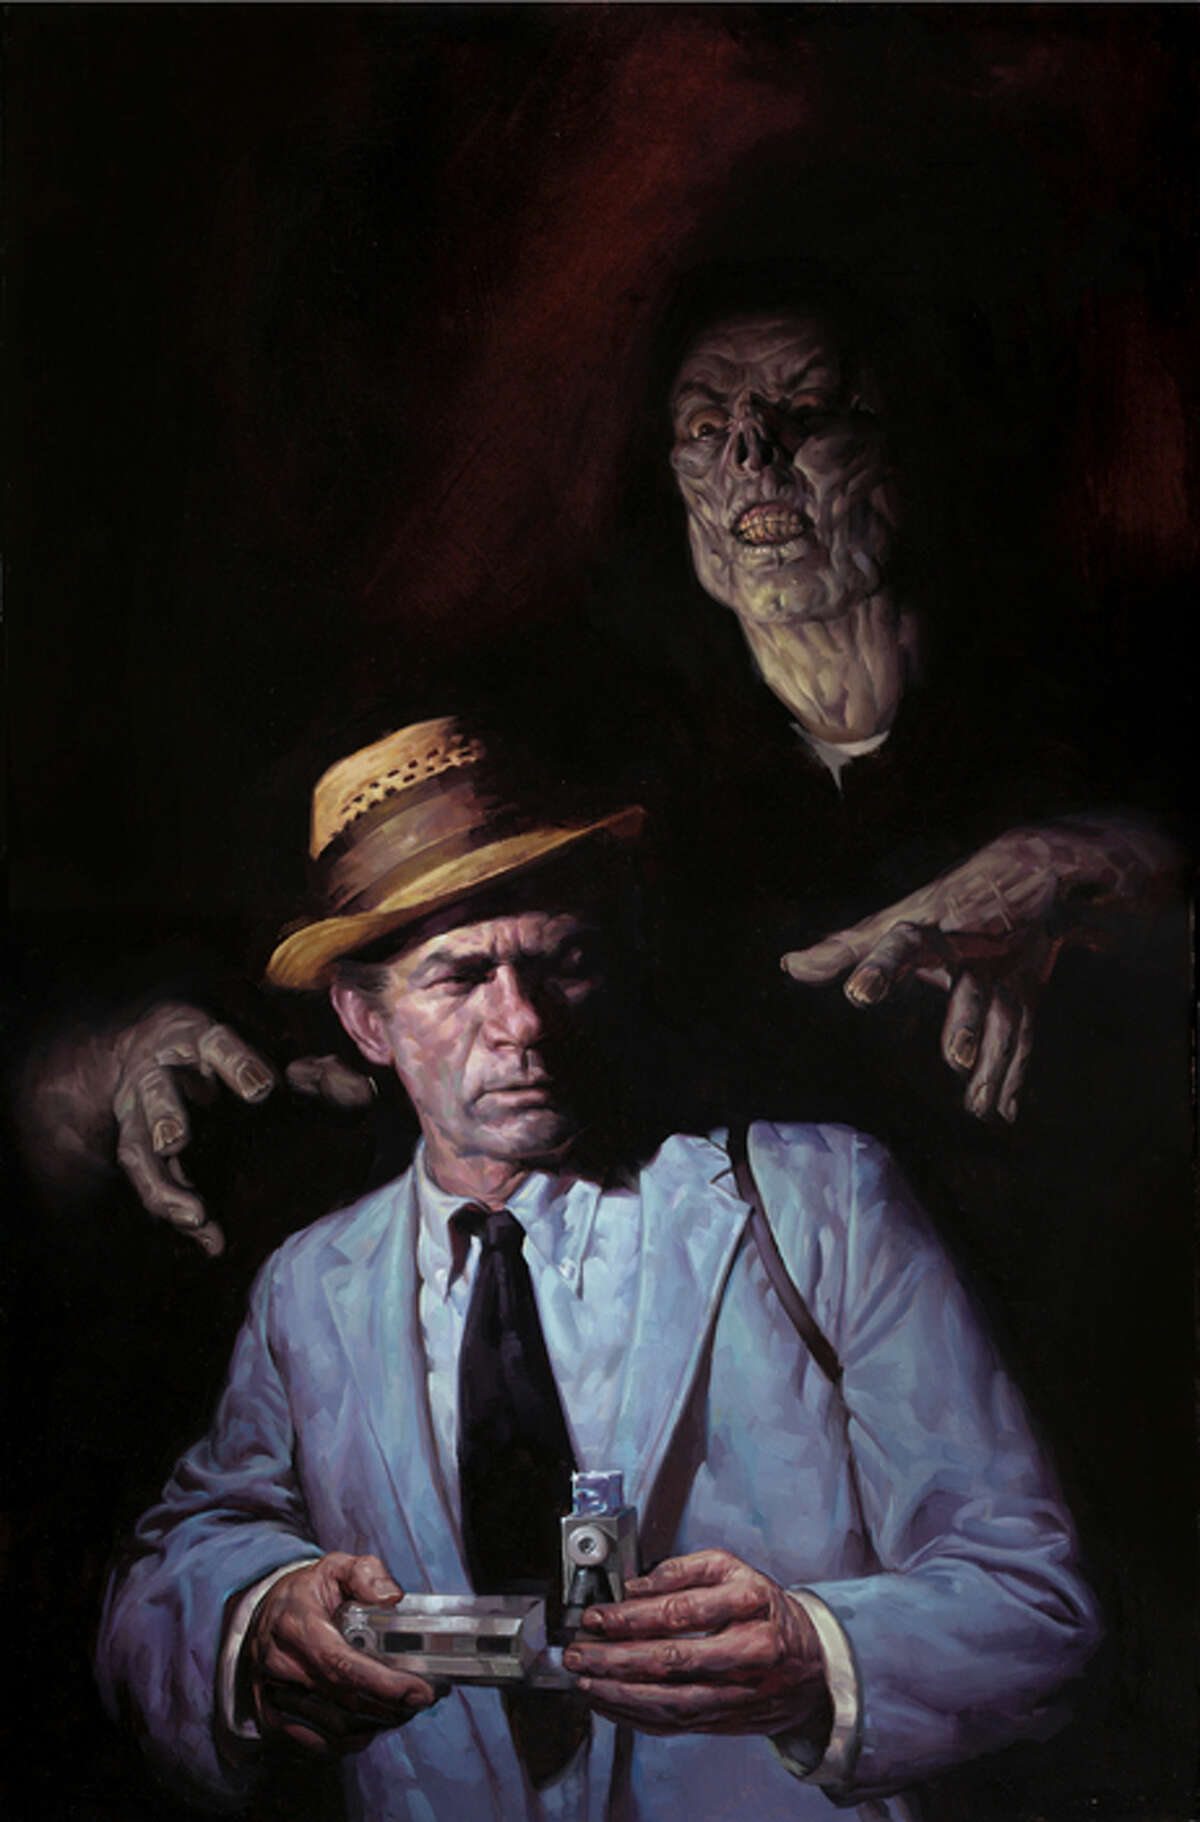 In 1973, reporter Carl Kolchak is hired by his former editor, Tony Vincenzo, to cover a series of killings in